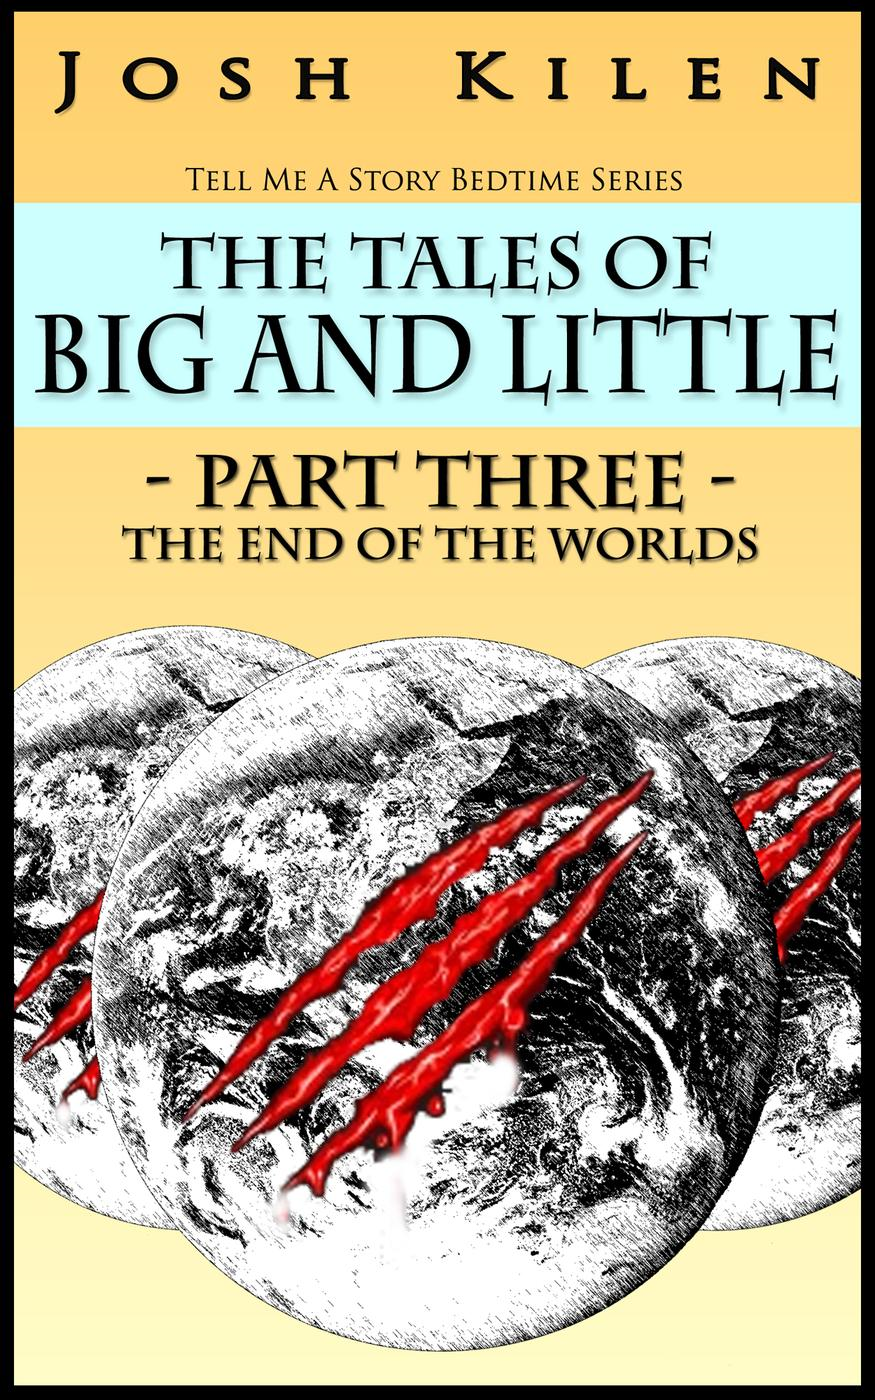 The Tales of Big and Little - Part Three: The End of The Worlds